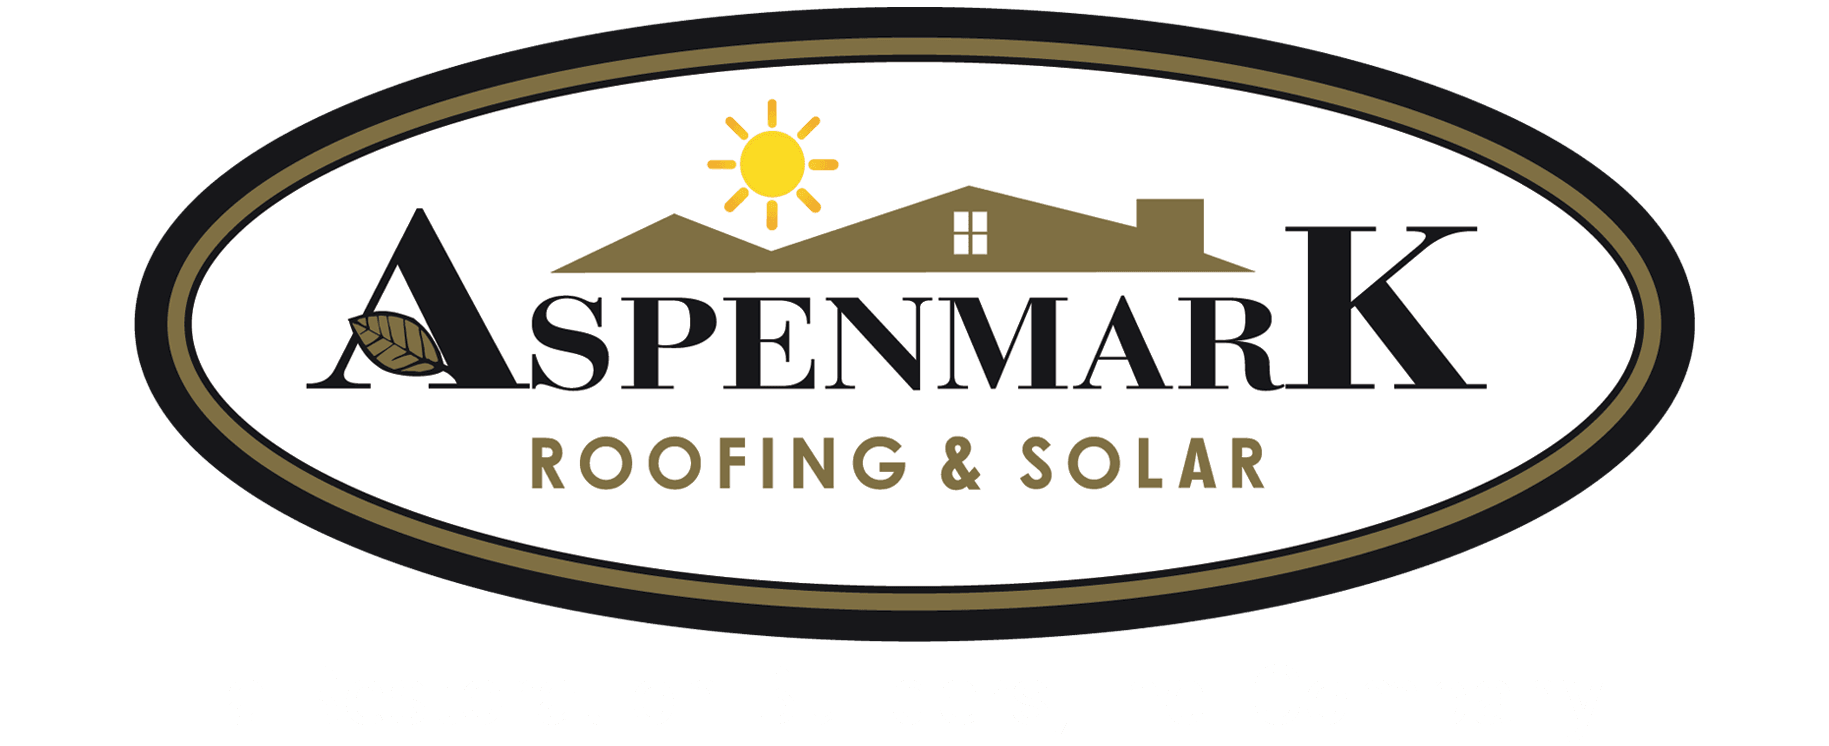 Aspenmark Roofing Dallas Roofing Contractor